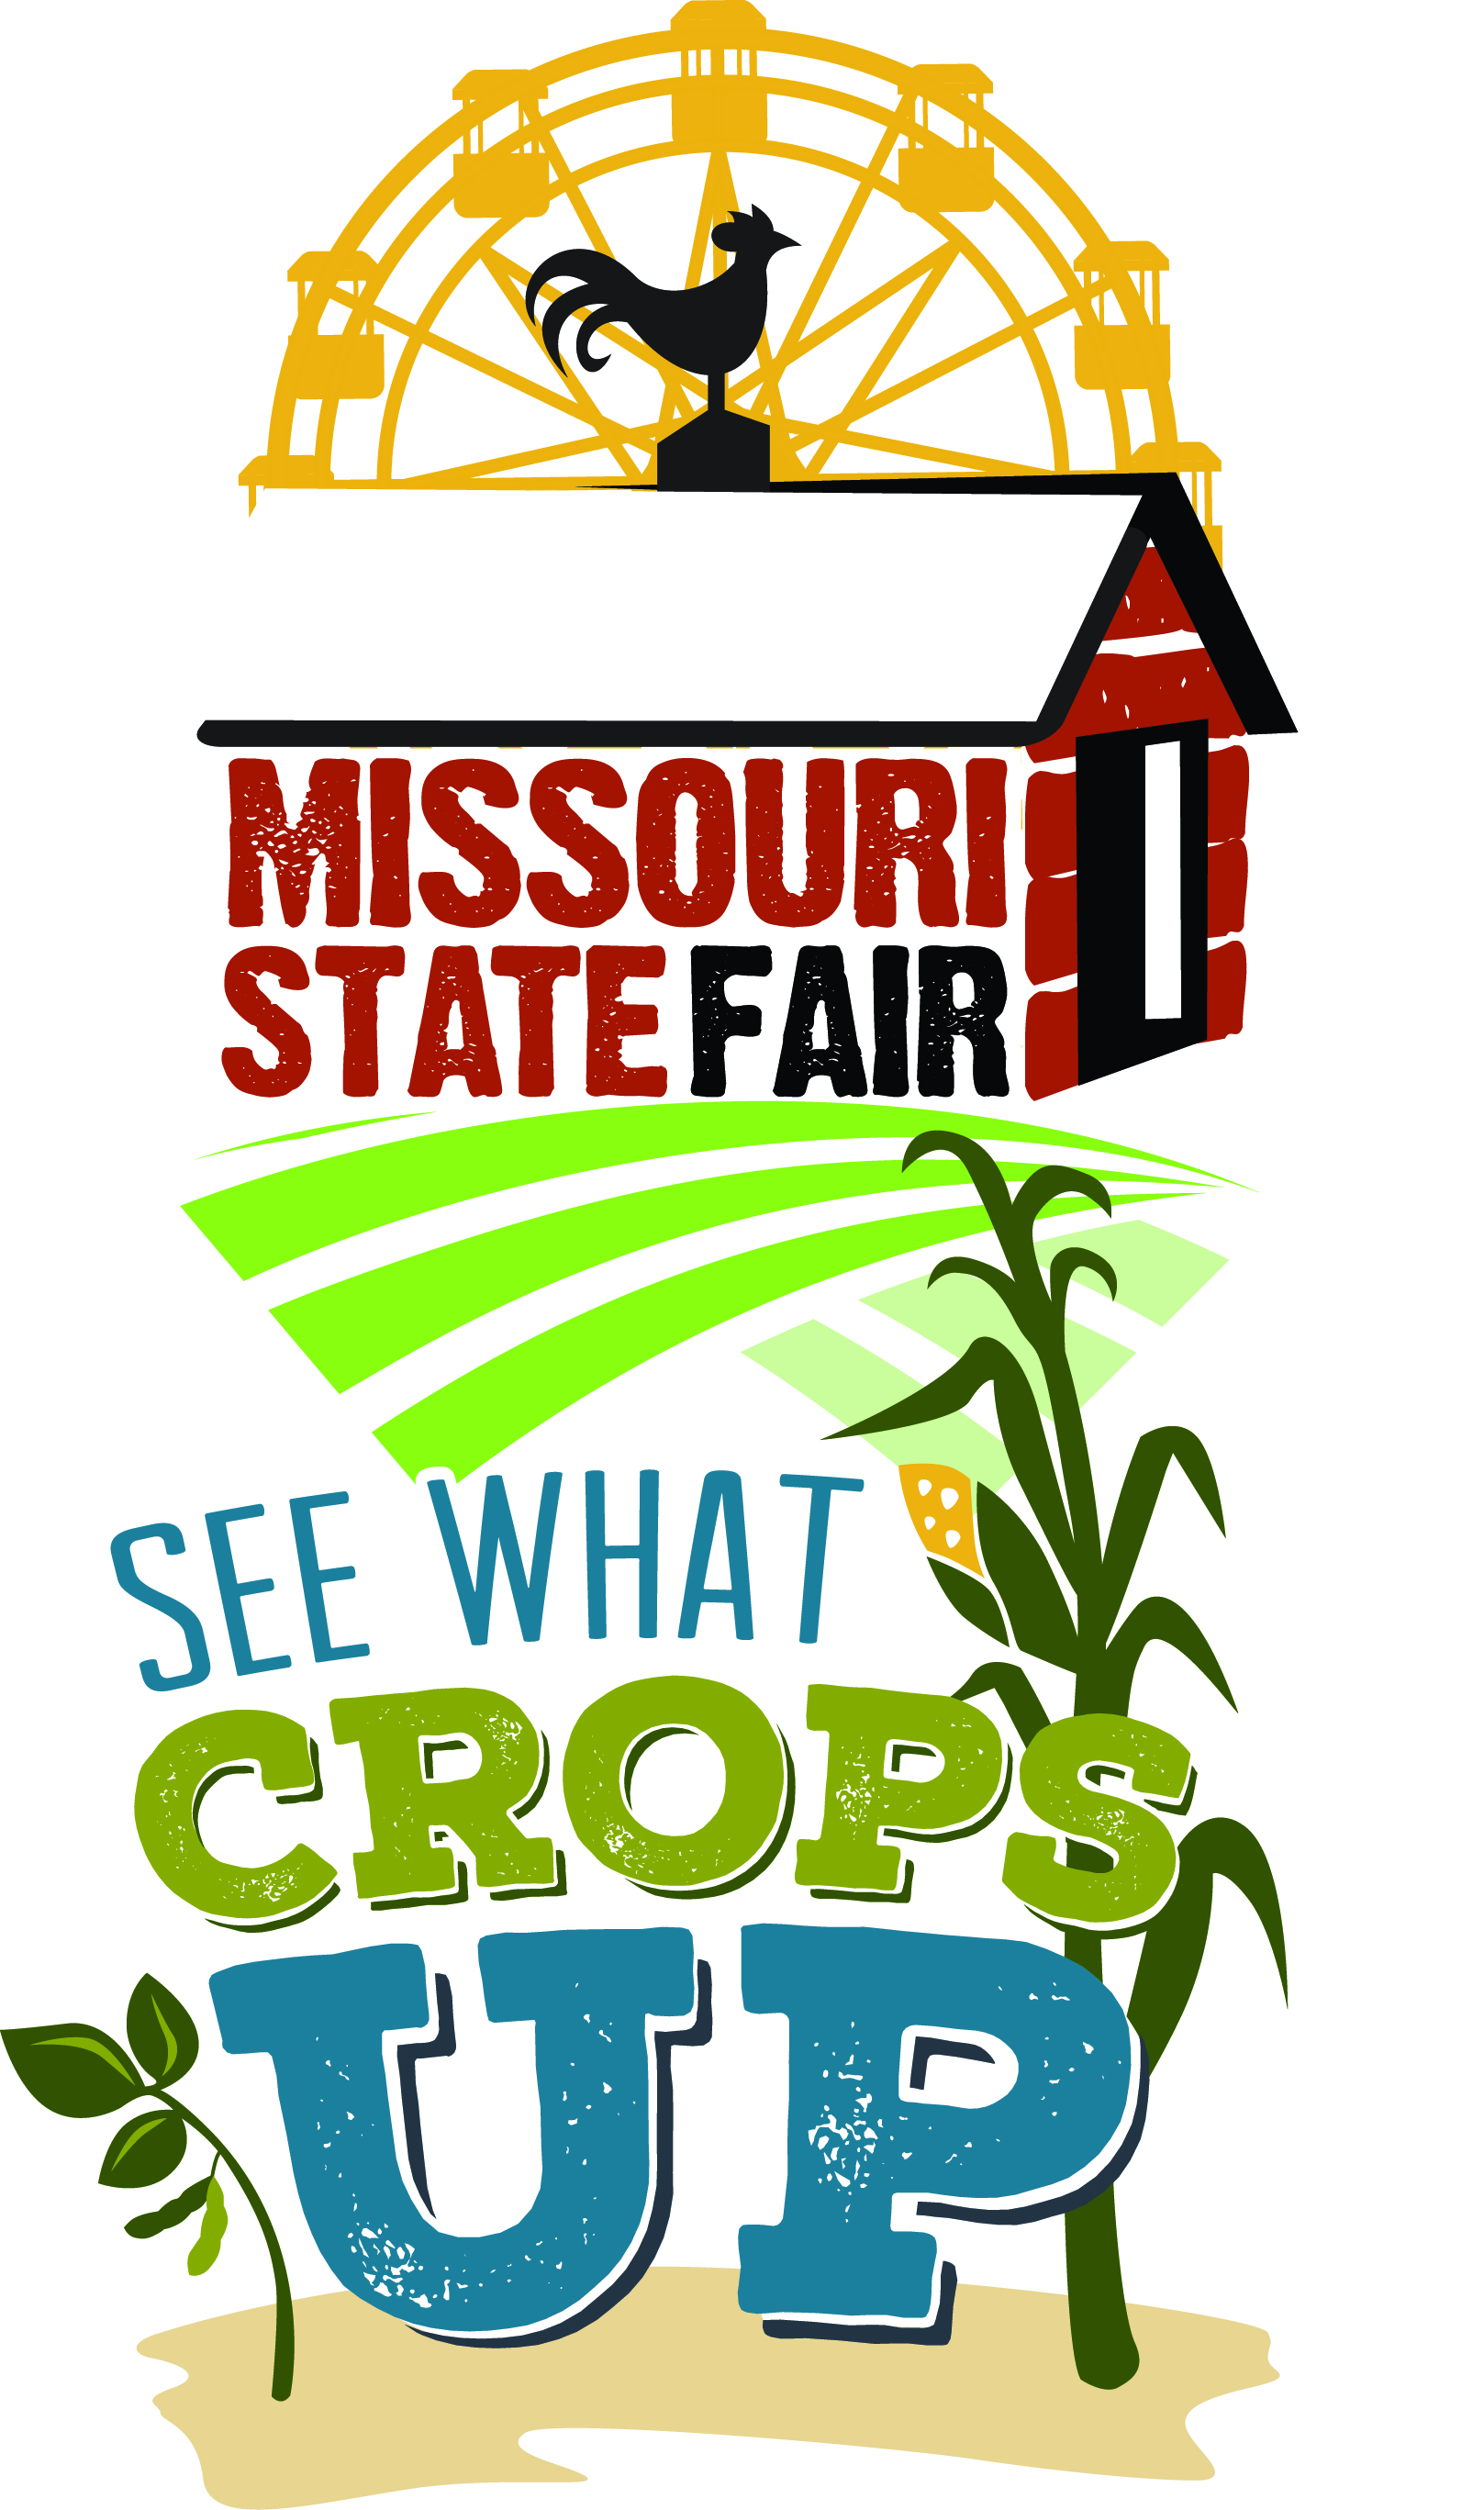 Missouri State Fair announces two concerts